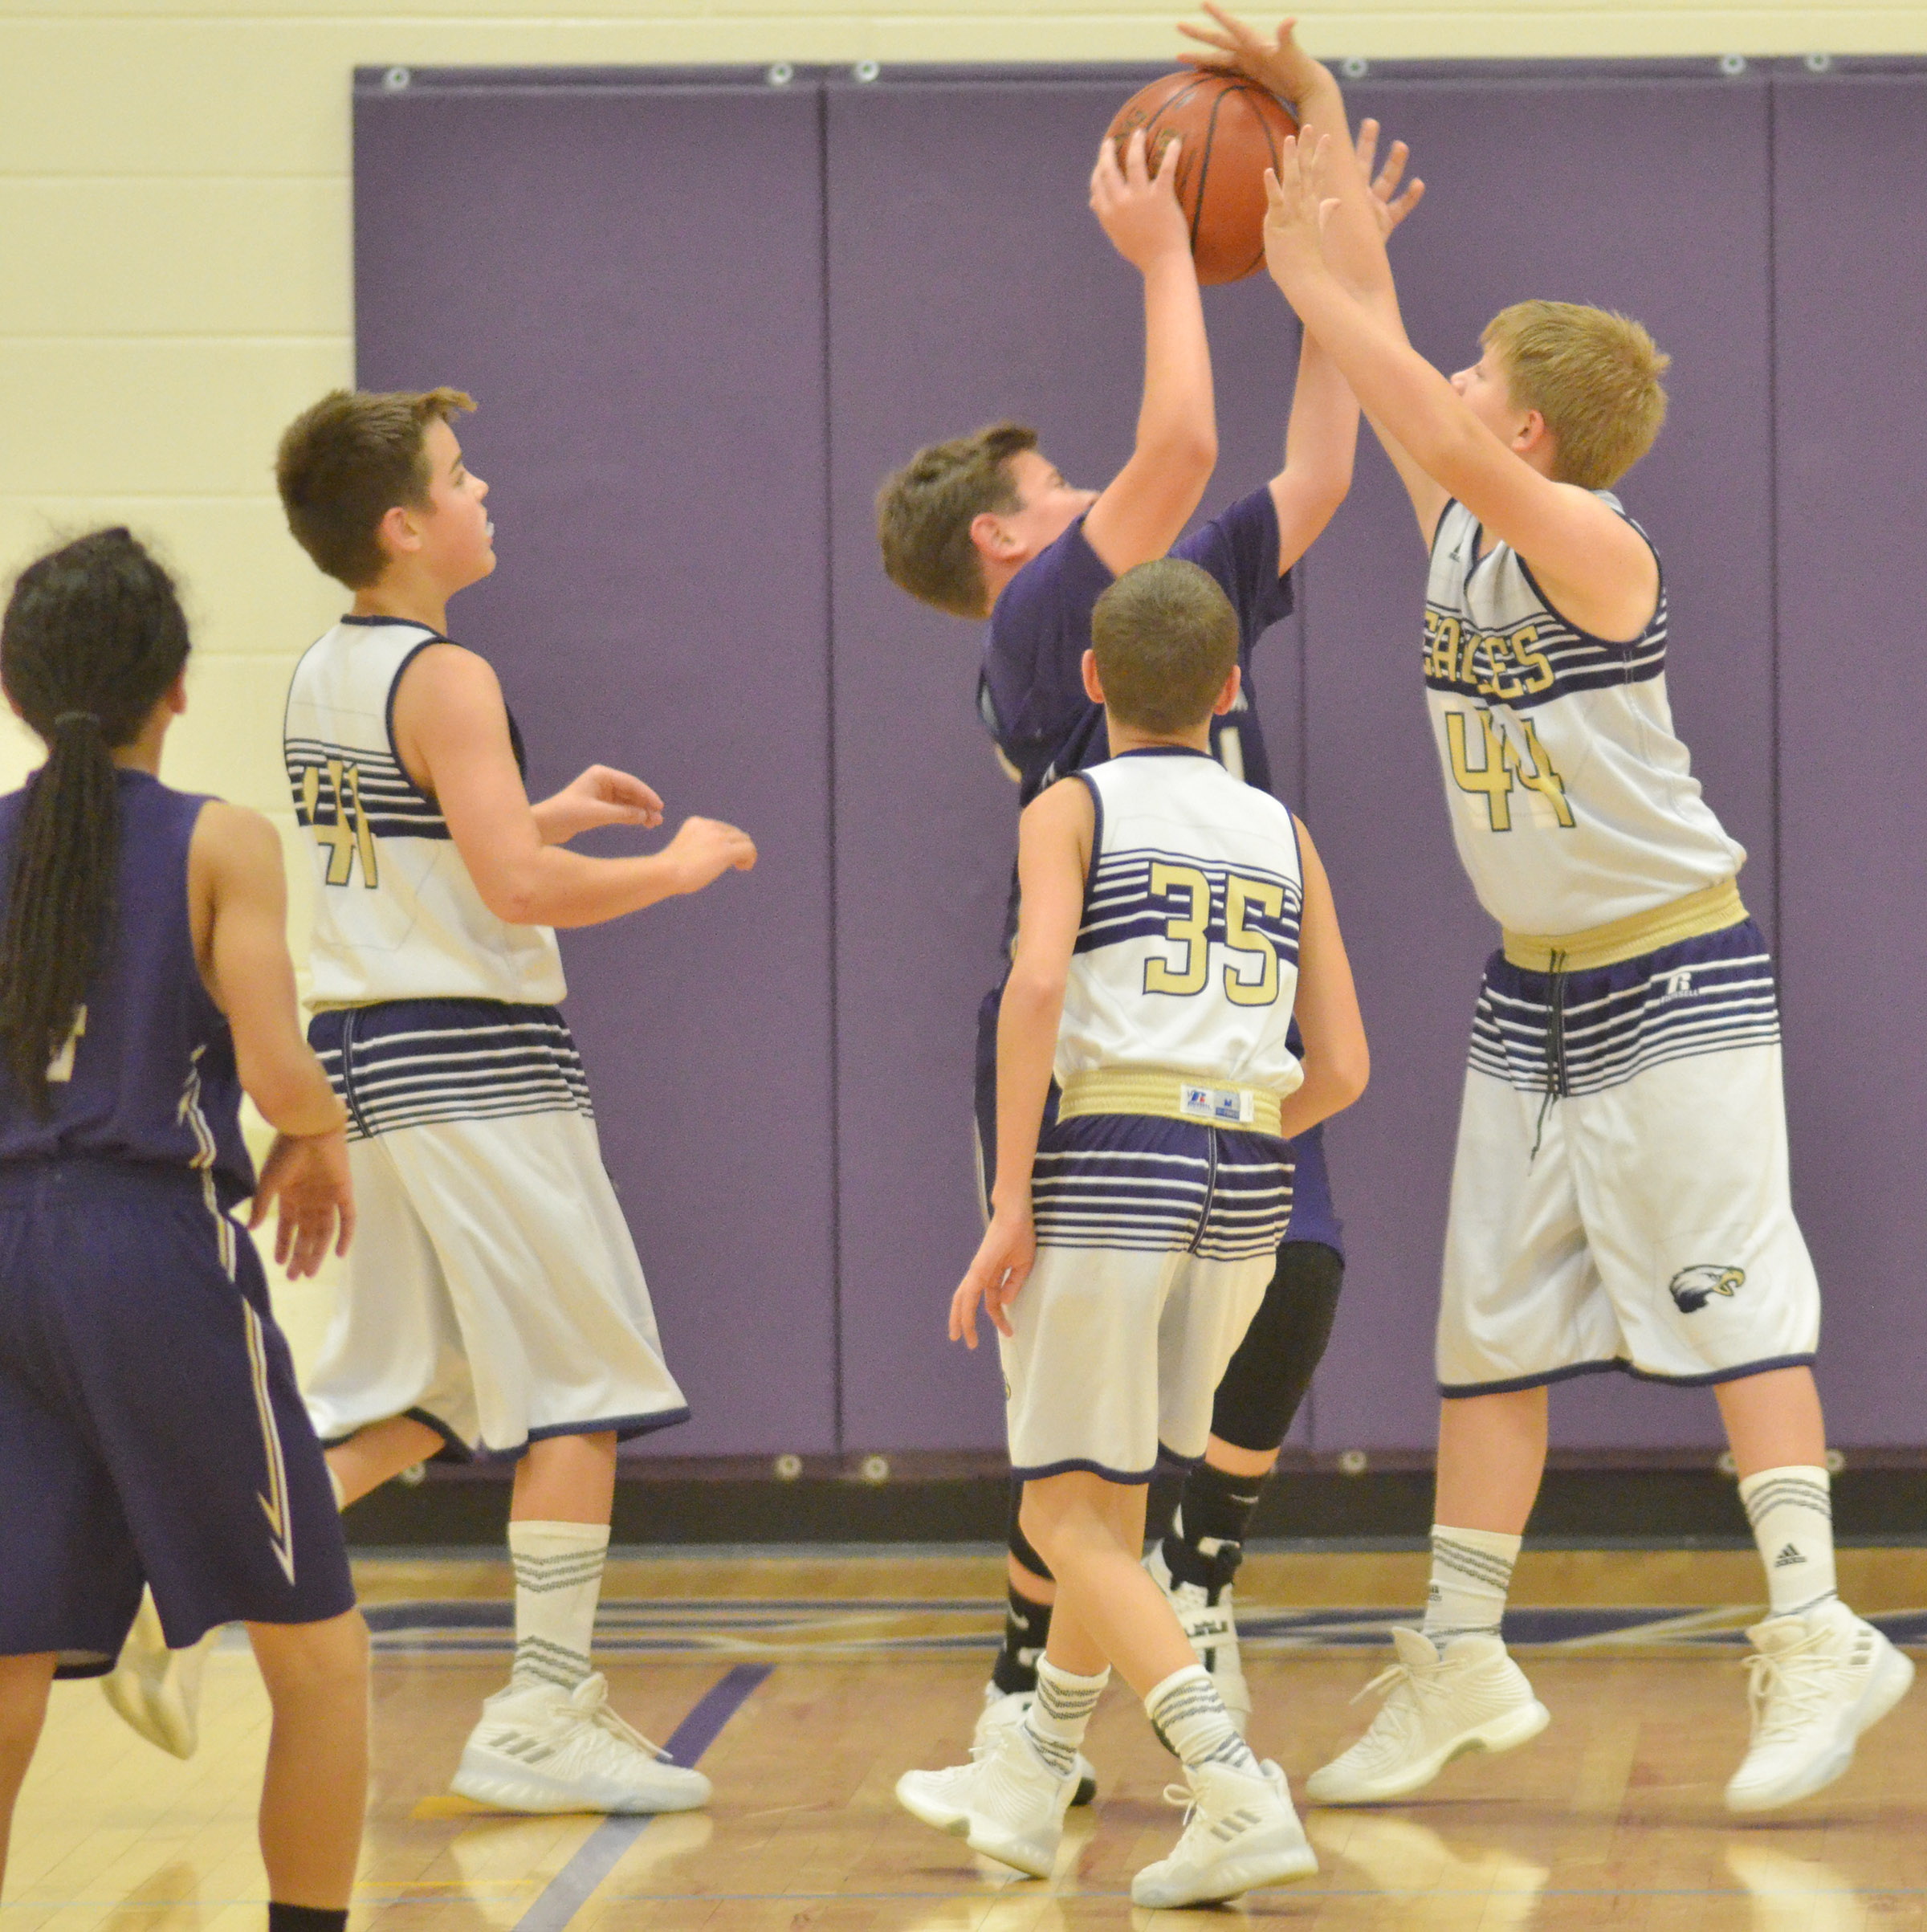 From left, CMS sixth-grader Kaden Bloyd, Campbellsville Elementary School fifth-grader Rowan Petett and sixth-grader Jesse King fight for the rebound.